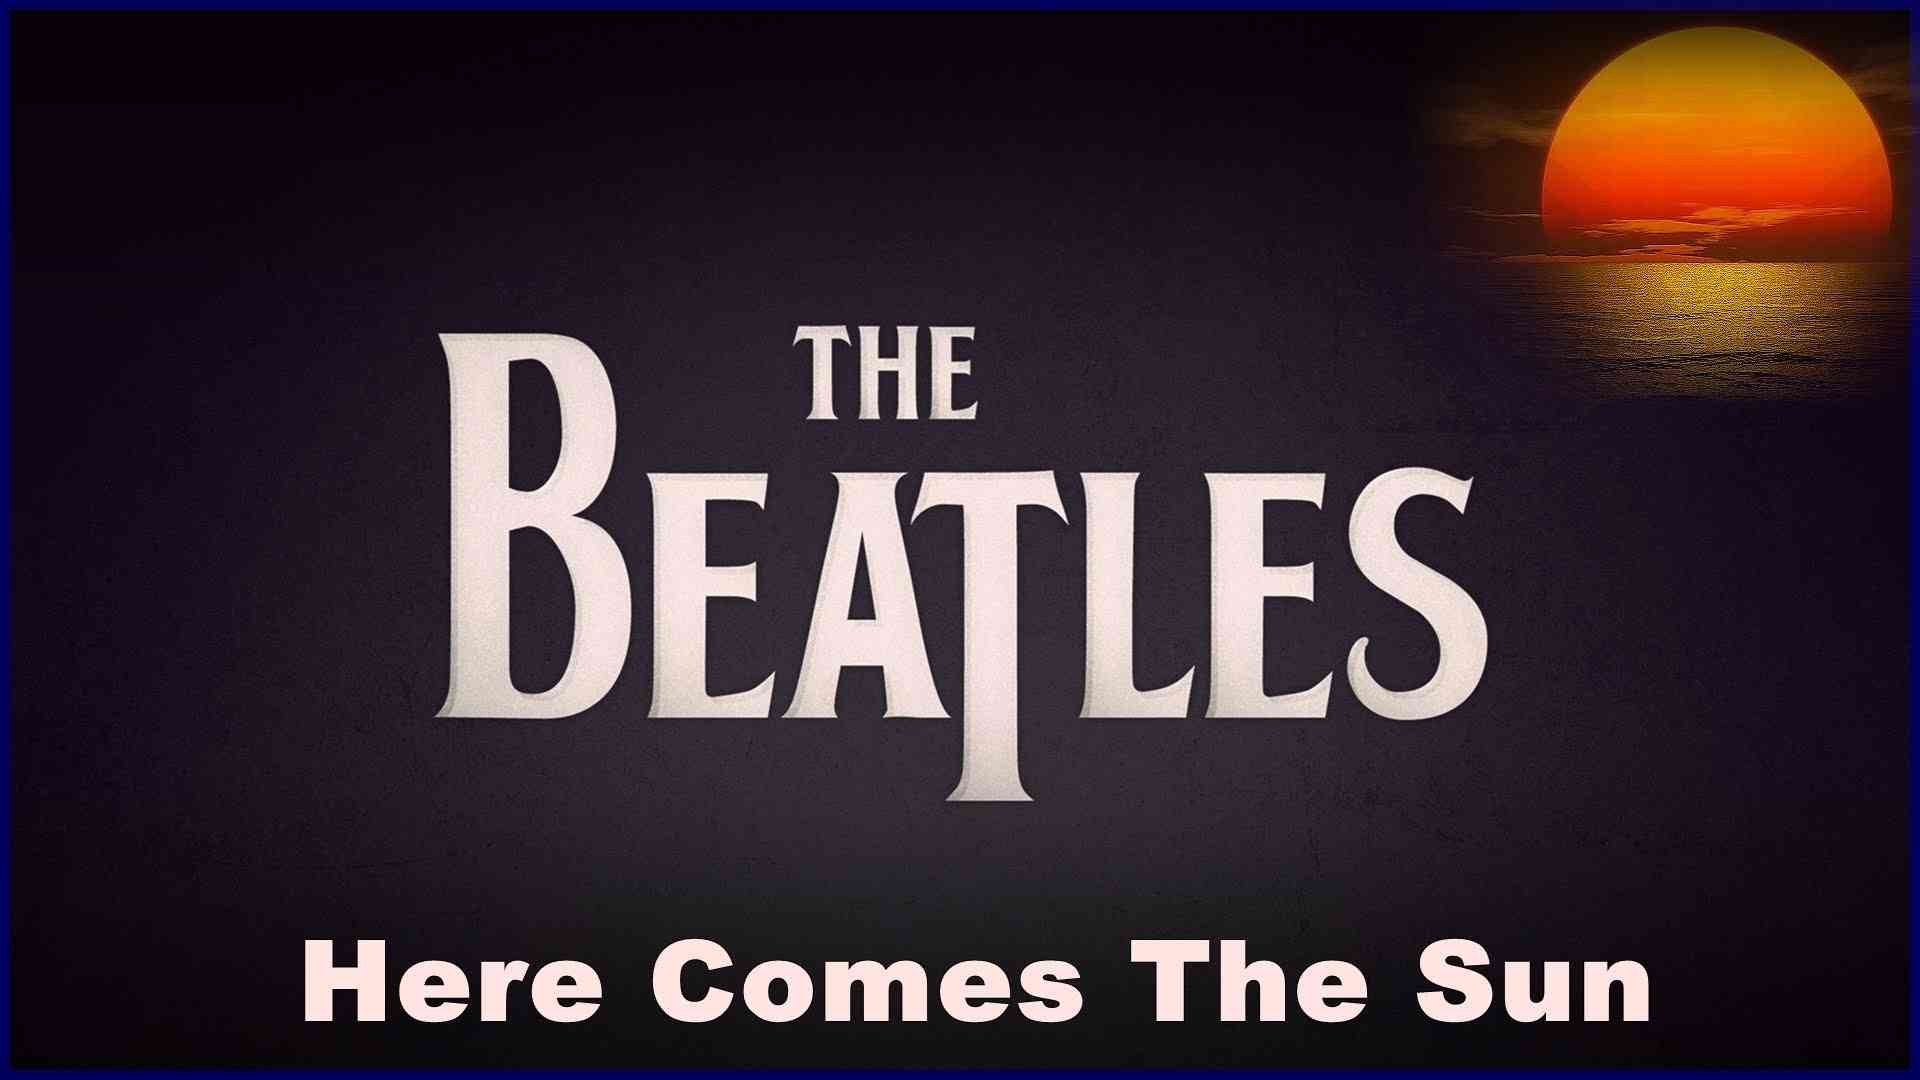 The Beatles - Here Comes The Sun [Digital Remastered] - YouTube